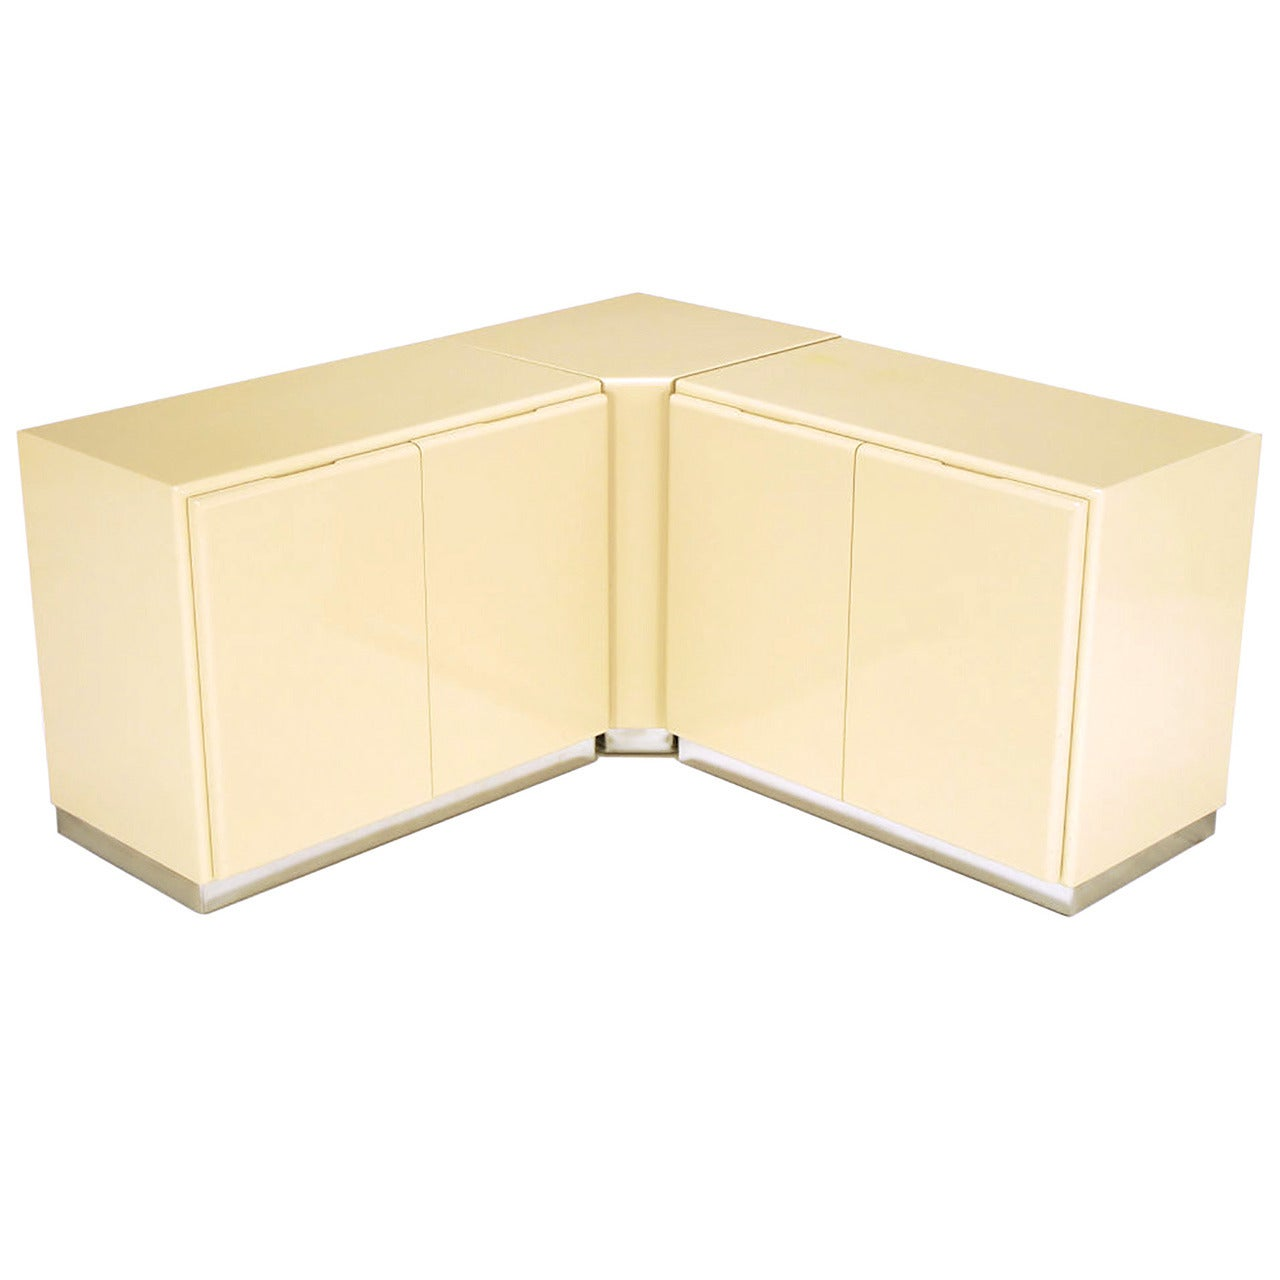 Milo Baughman Ivory Lacquer and Chrome, Two-Door Cabinets with Corner Pedestal